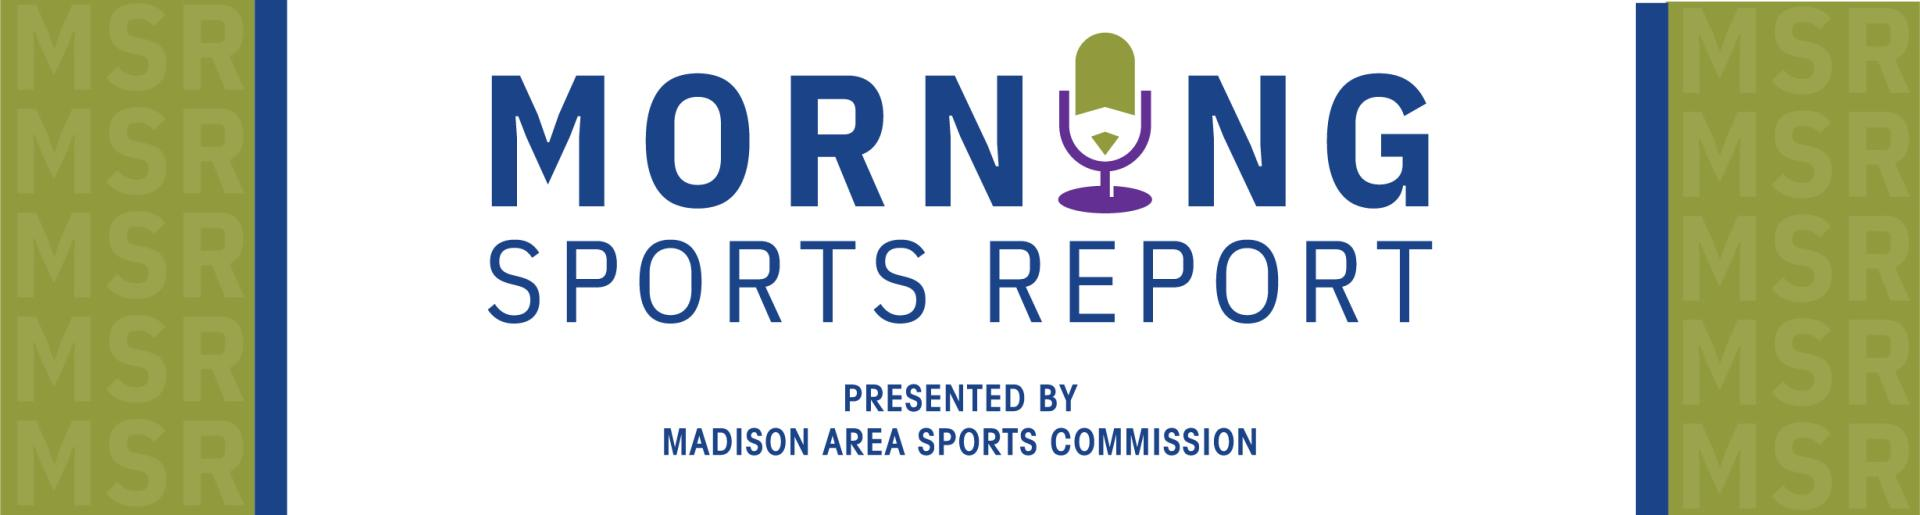 Morning Sports Report logo